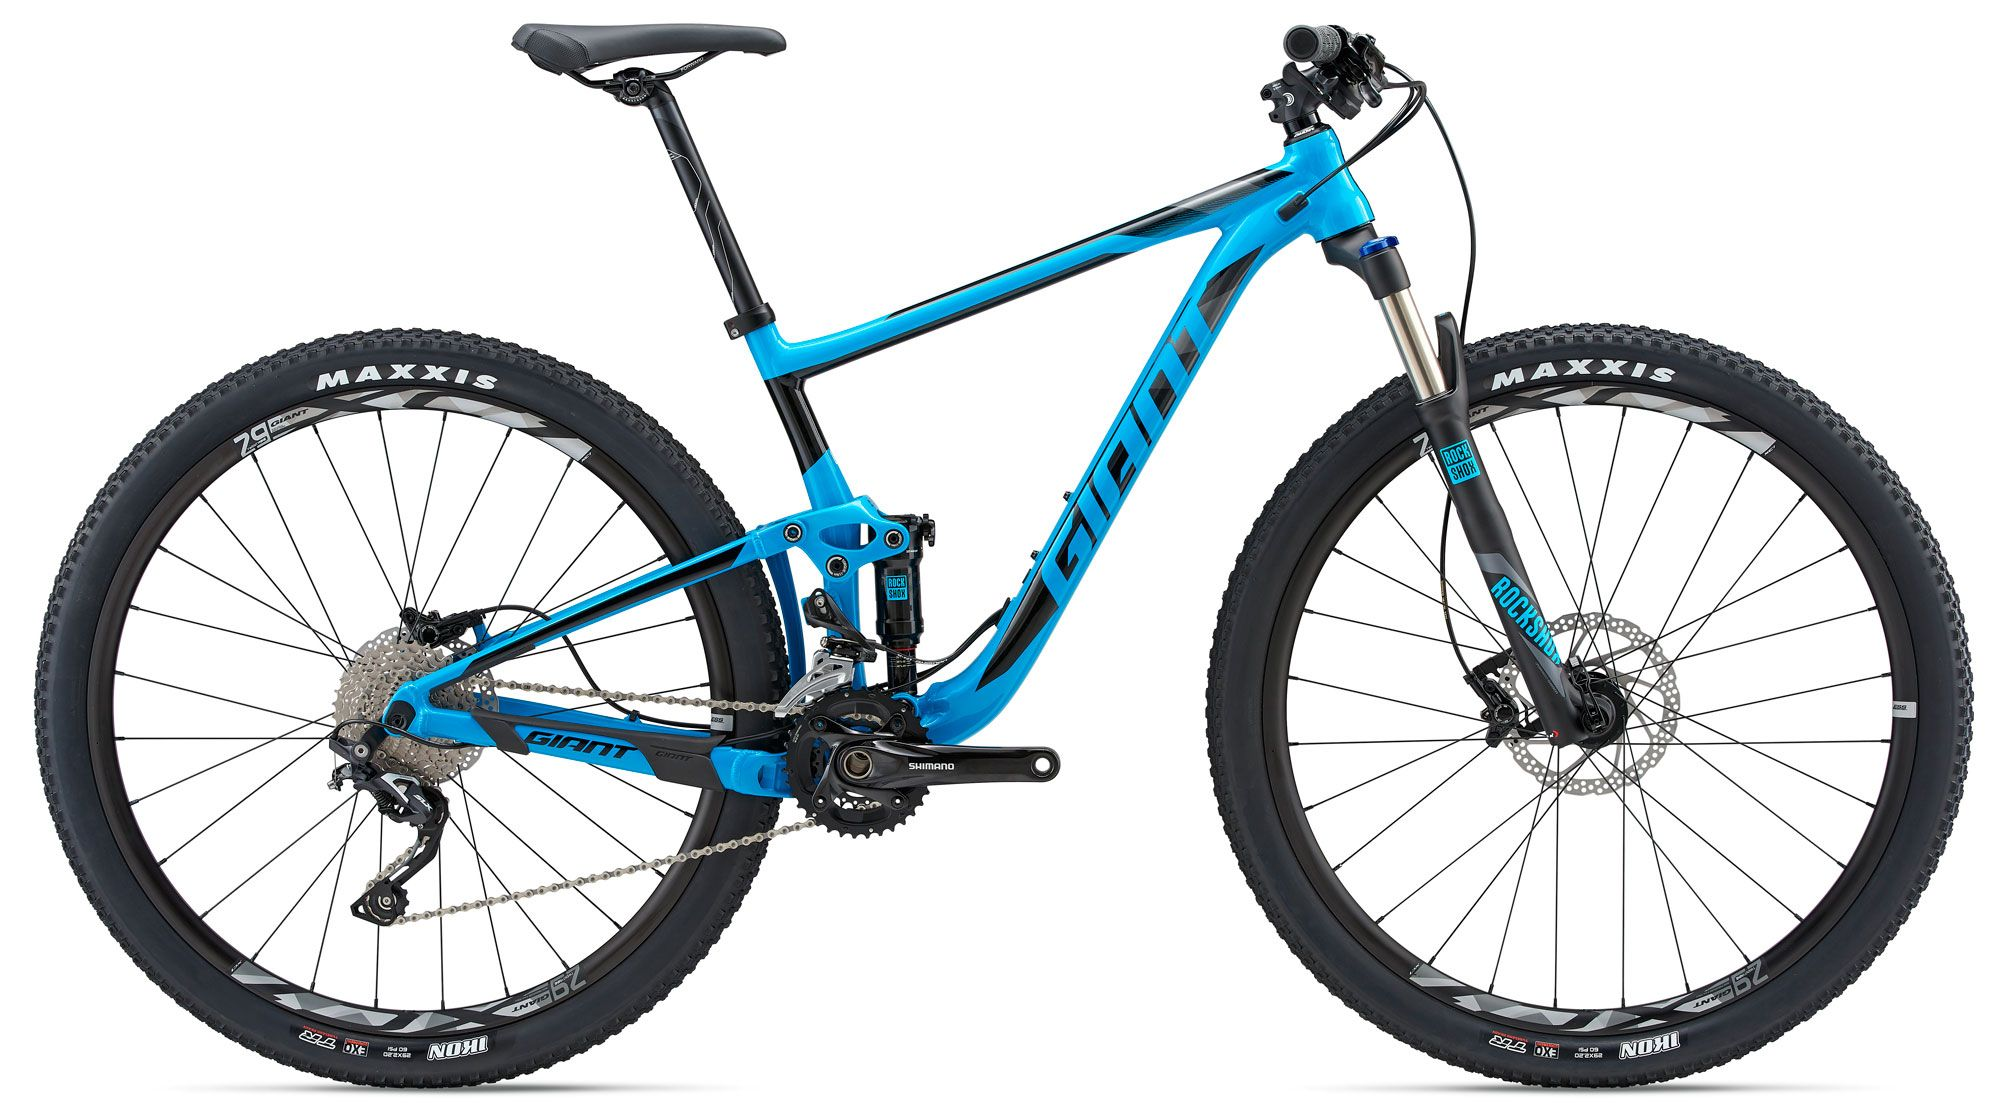 Велосипед Giant Anthem 29er 3 2018 велосипед giant anthem advanced 27 5 2 2016